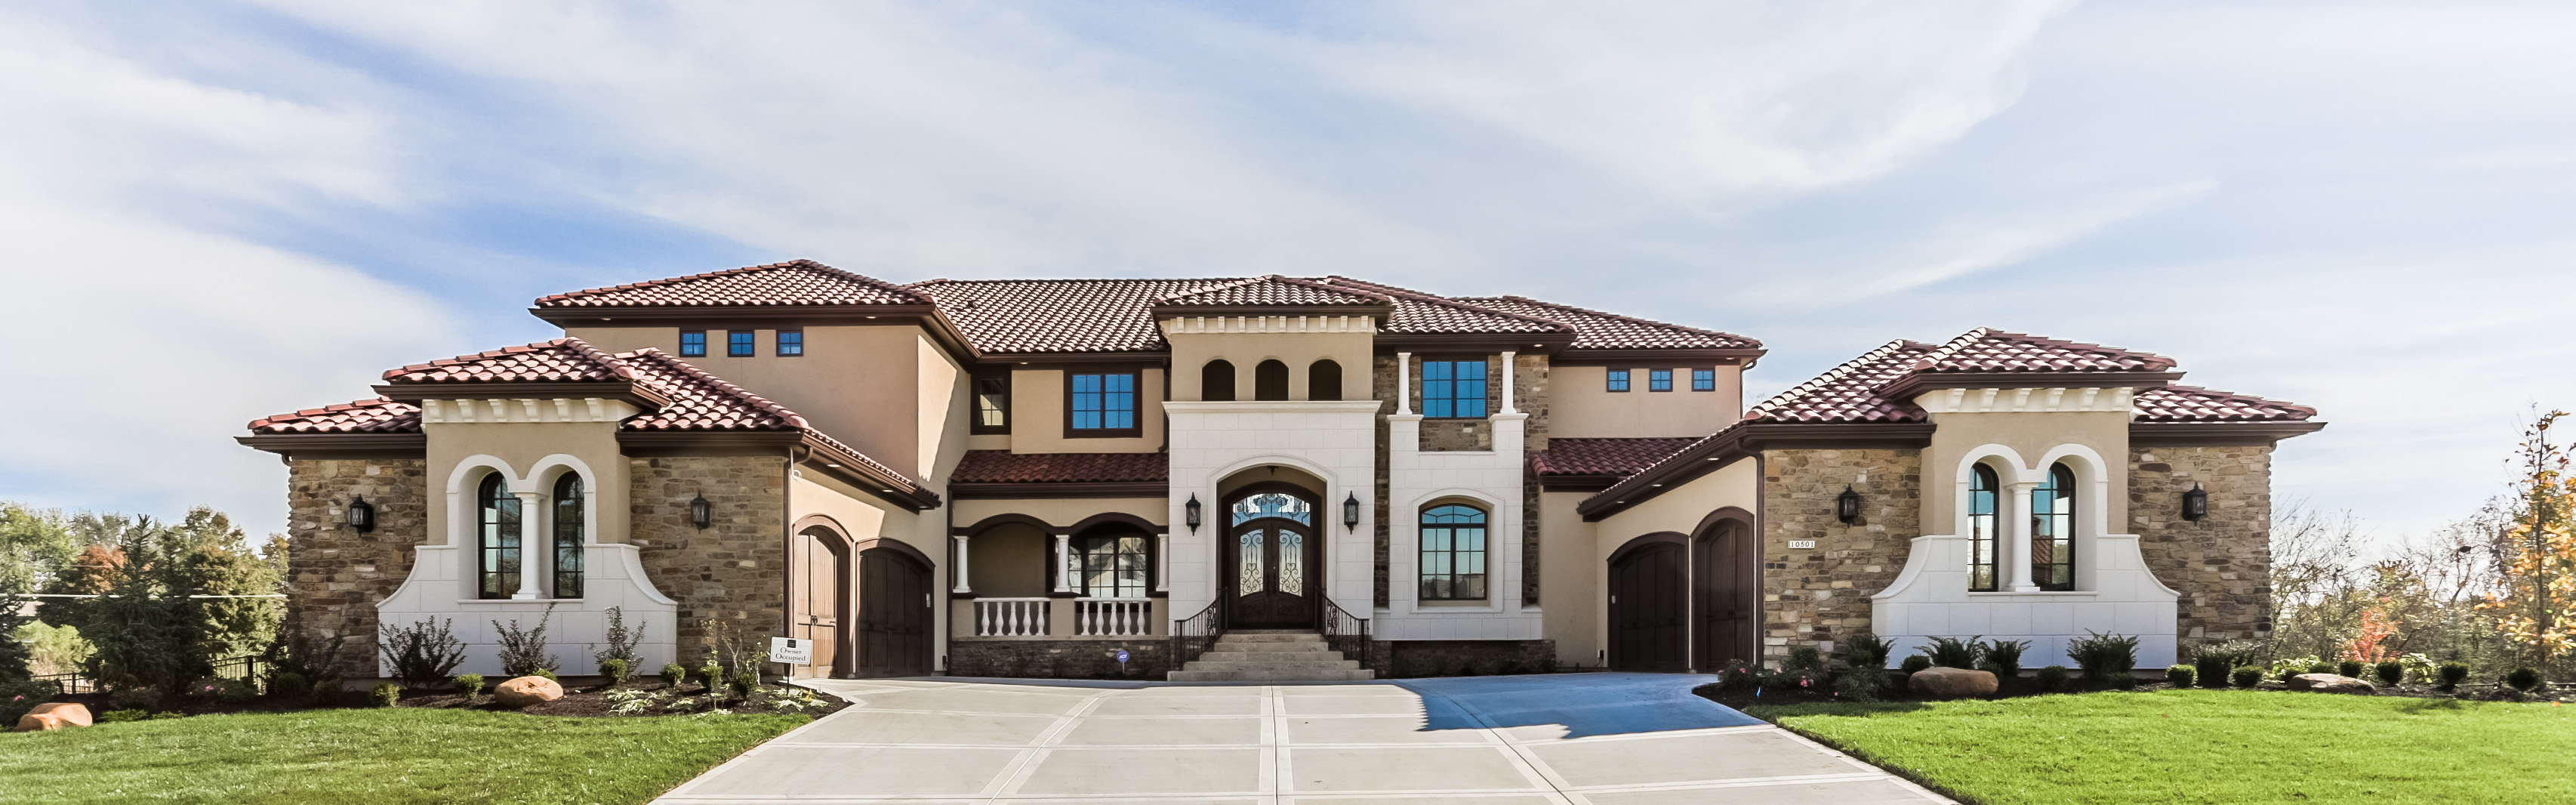 Over A Decade Of Excellence Building Luxury Custom Homes